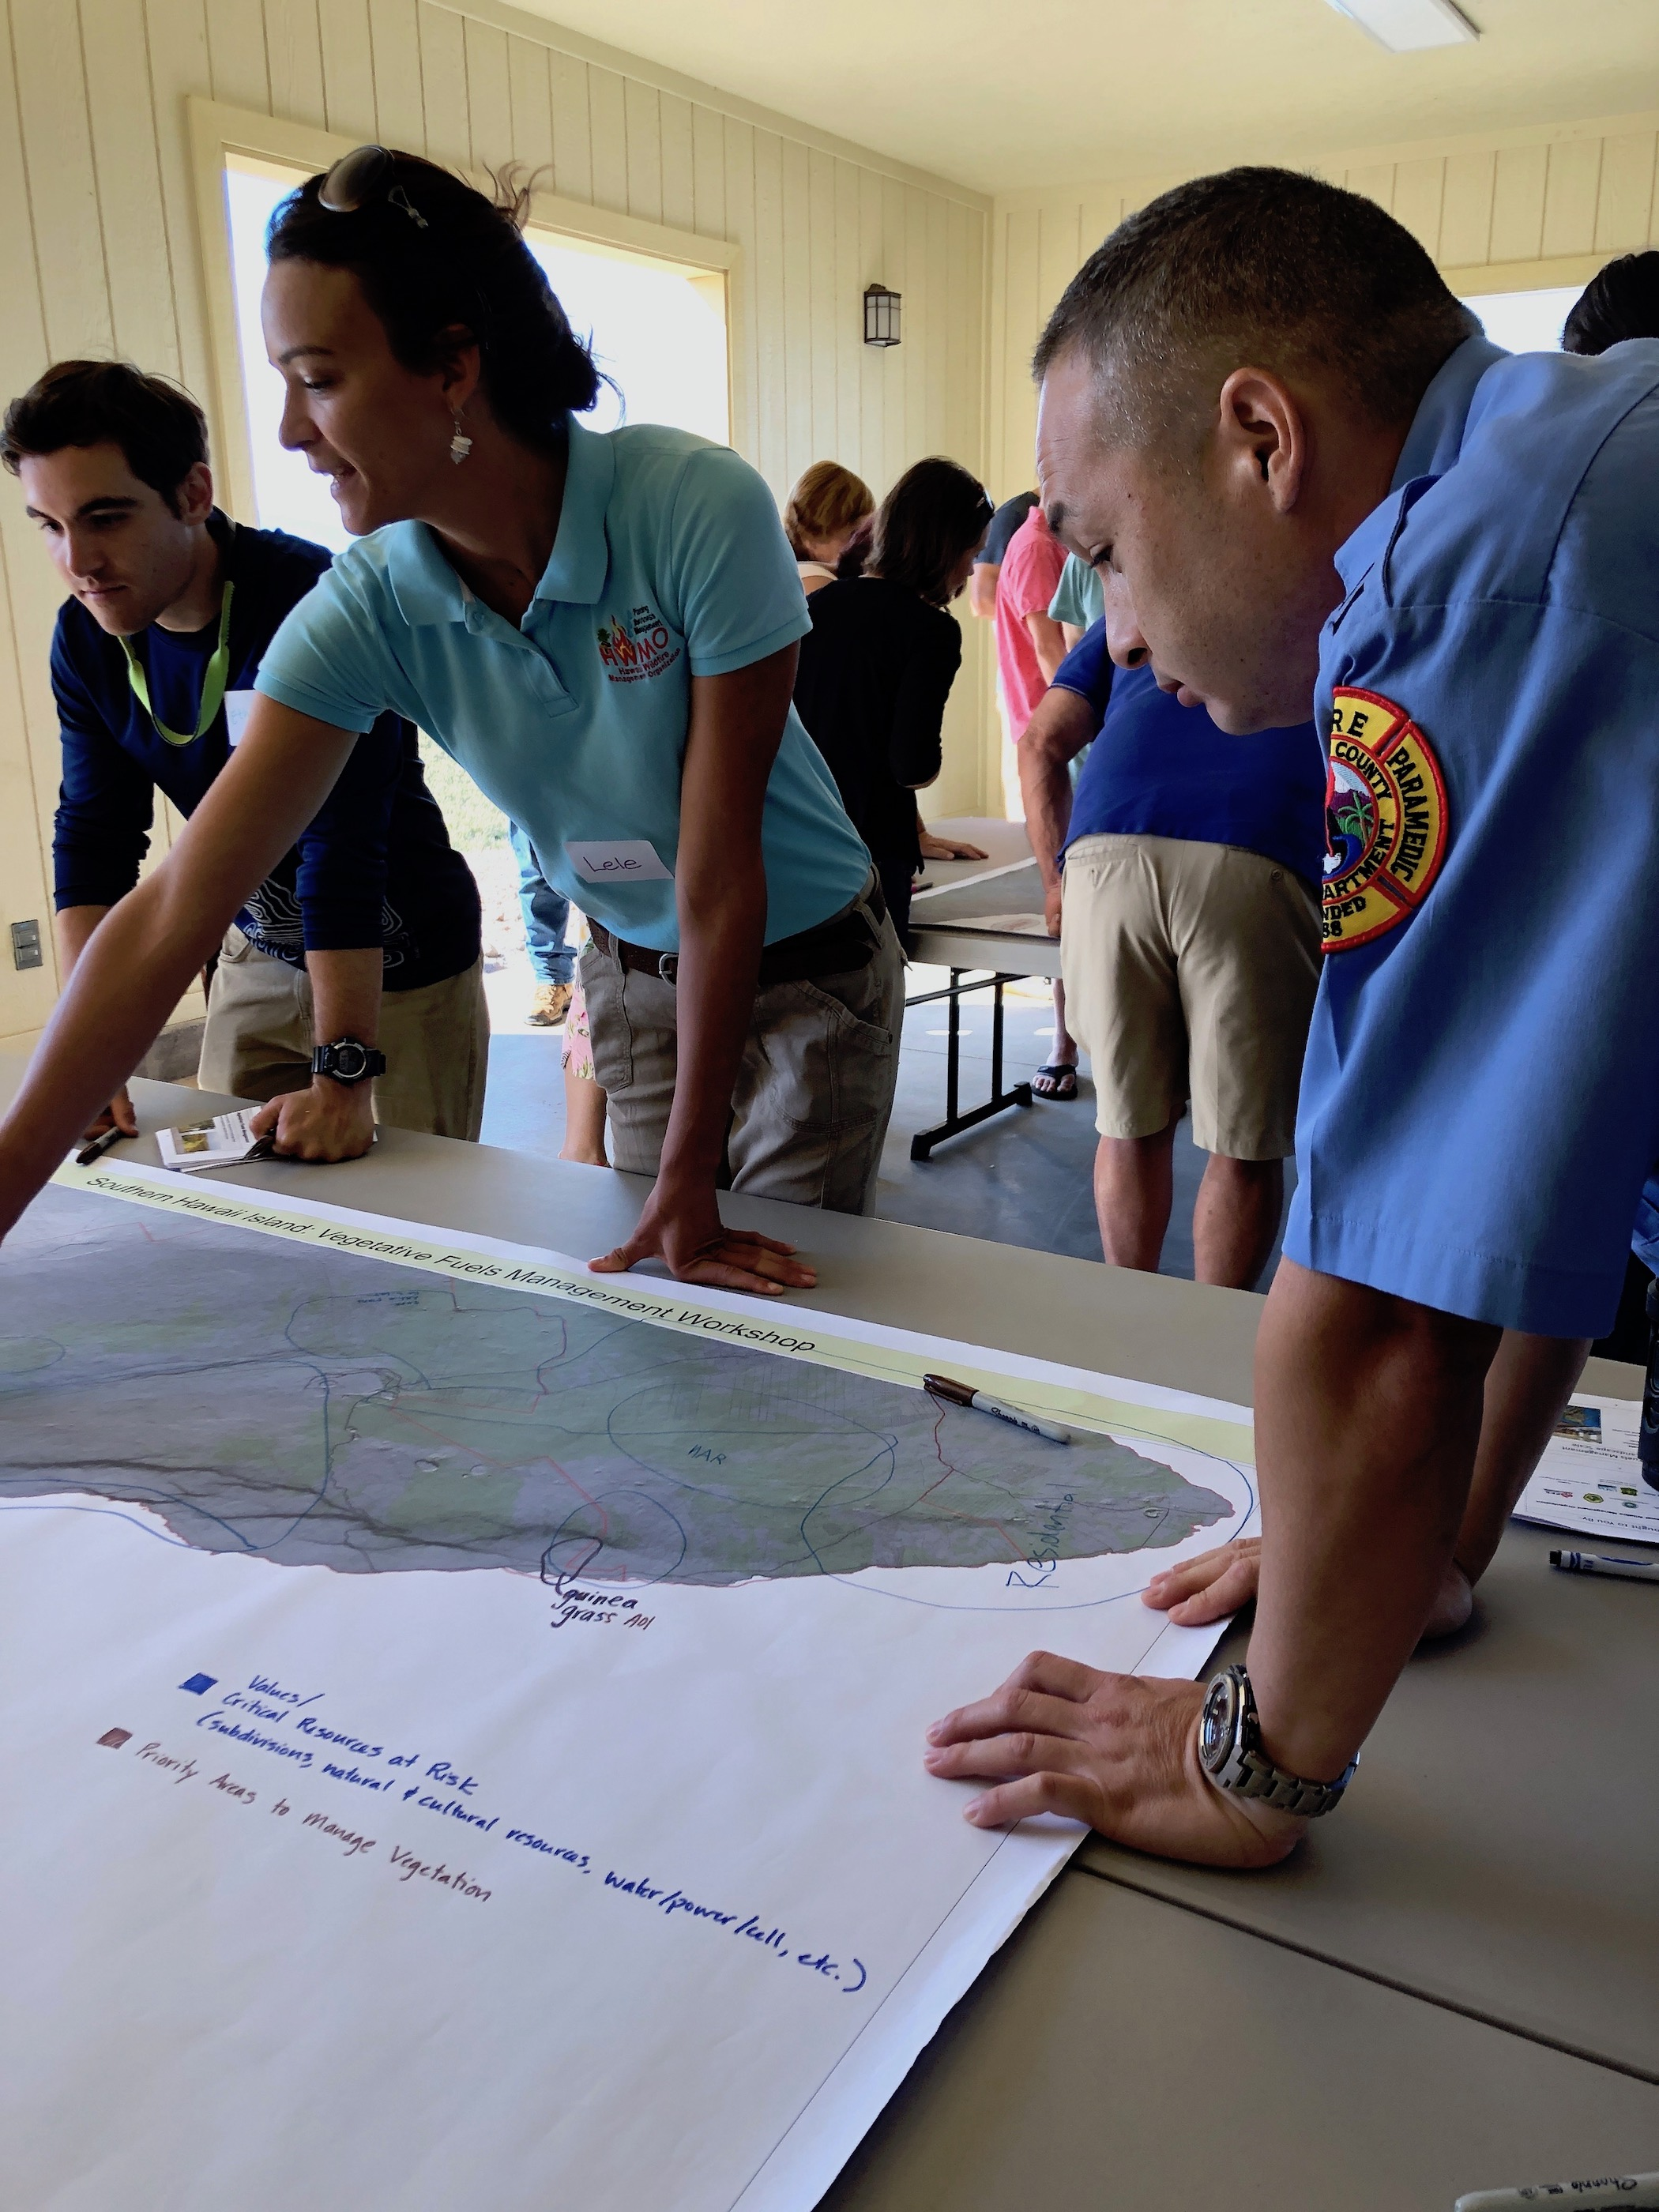 Hawaii Island Kailapa Vegetative Fuels Management Collaborative Action Planning Workshop_2_26_2019_35.jpg